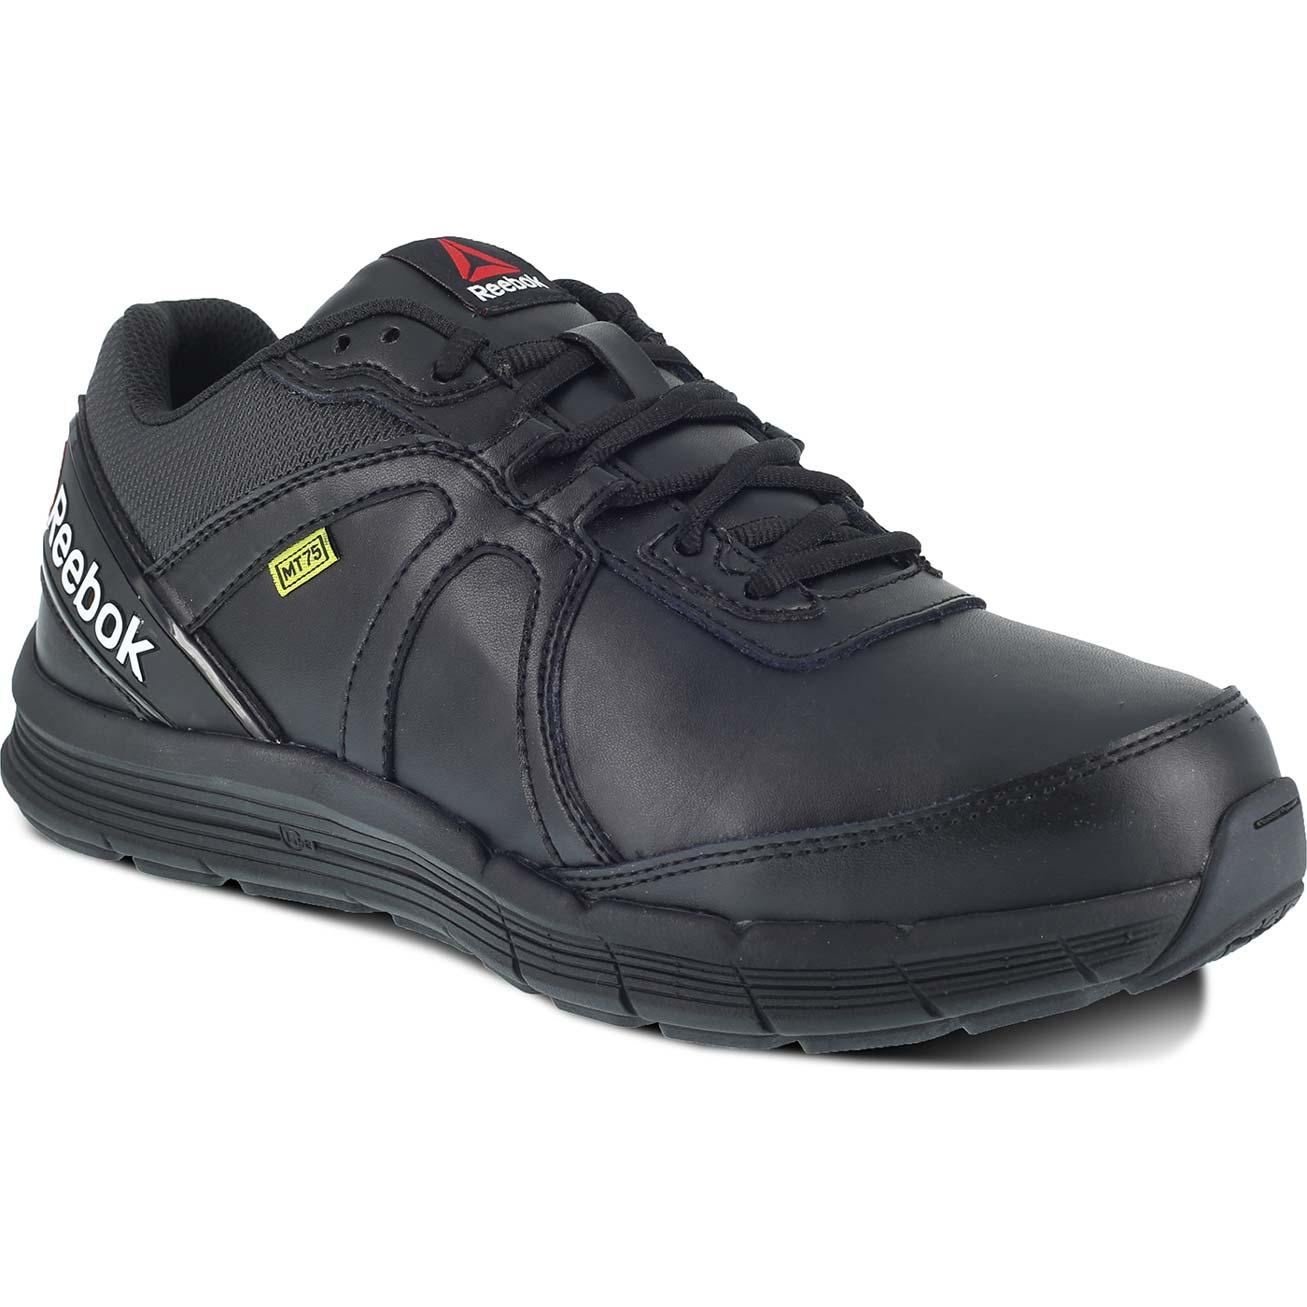 e3fa8e328fd Reebok Guide Work Steel Toe Internal Met Guard Work Cross Trainer  ShoeReebok Guide Work Steel Toe Internal Met Guard Work Cross Trainer Shoe